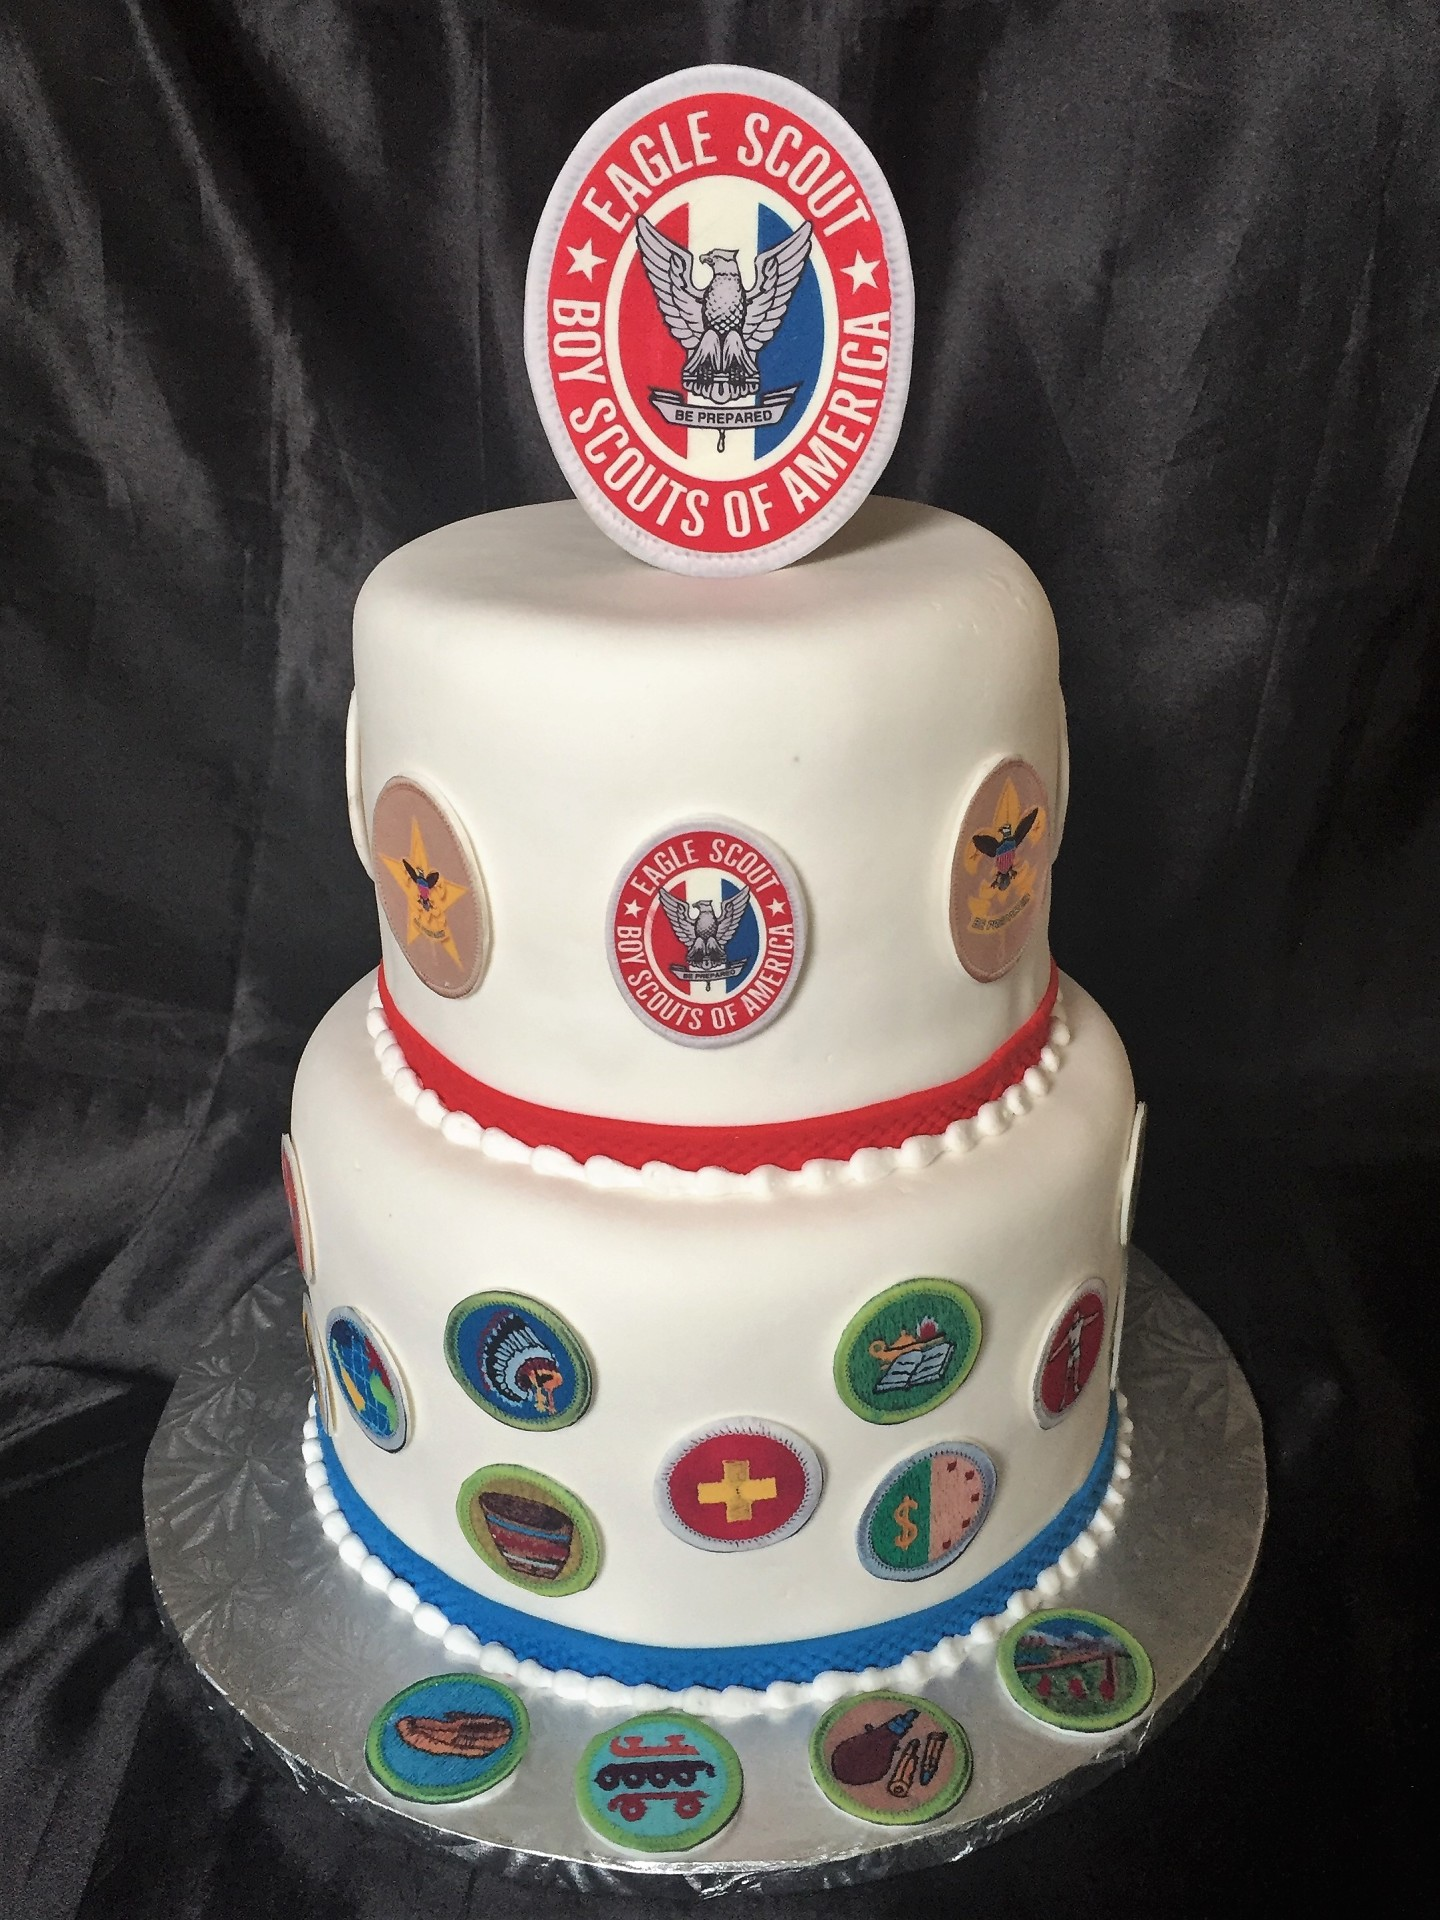 Eagle scout tiered fondant